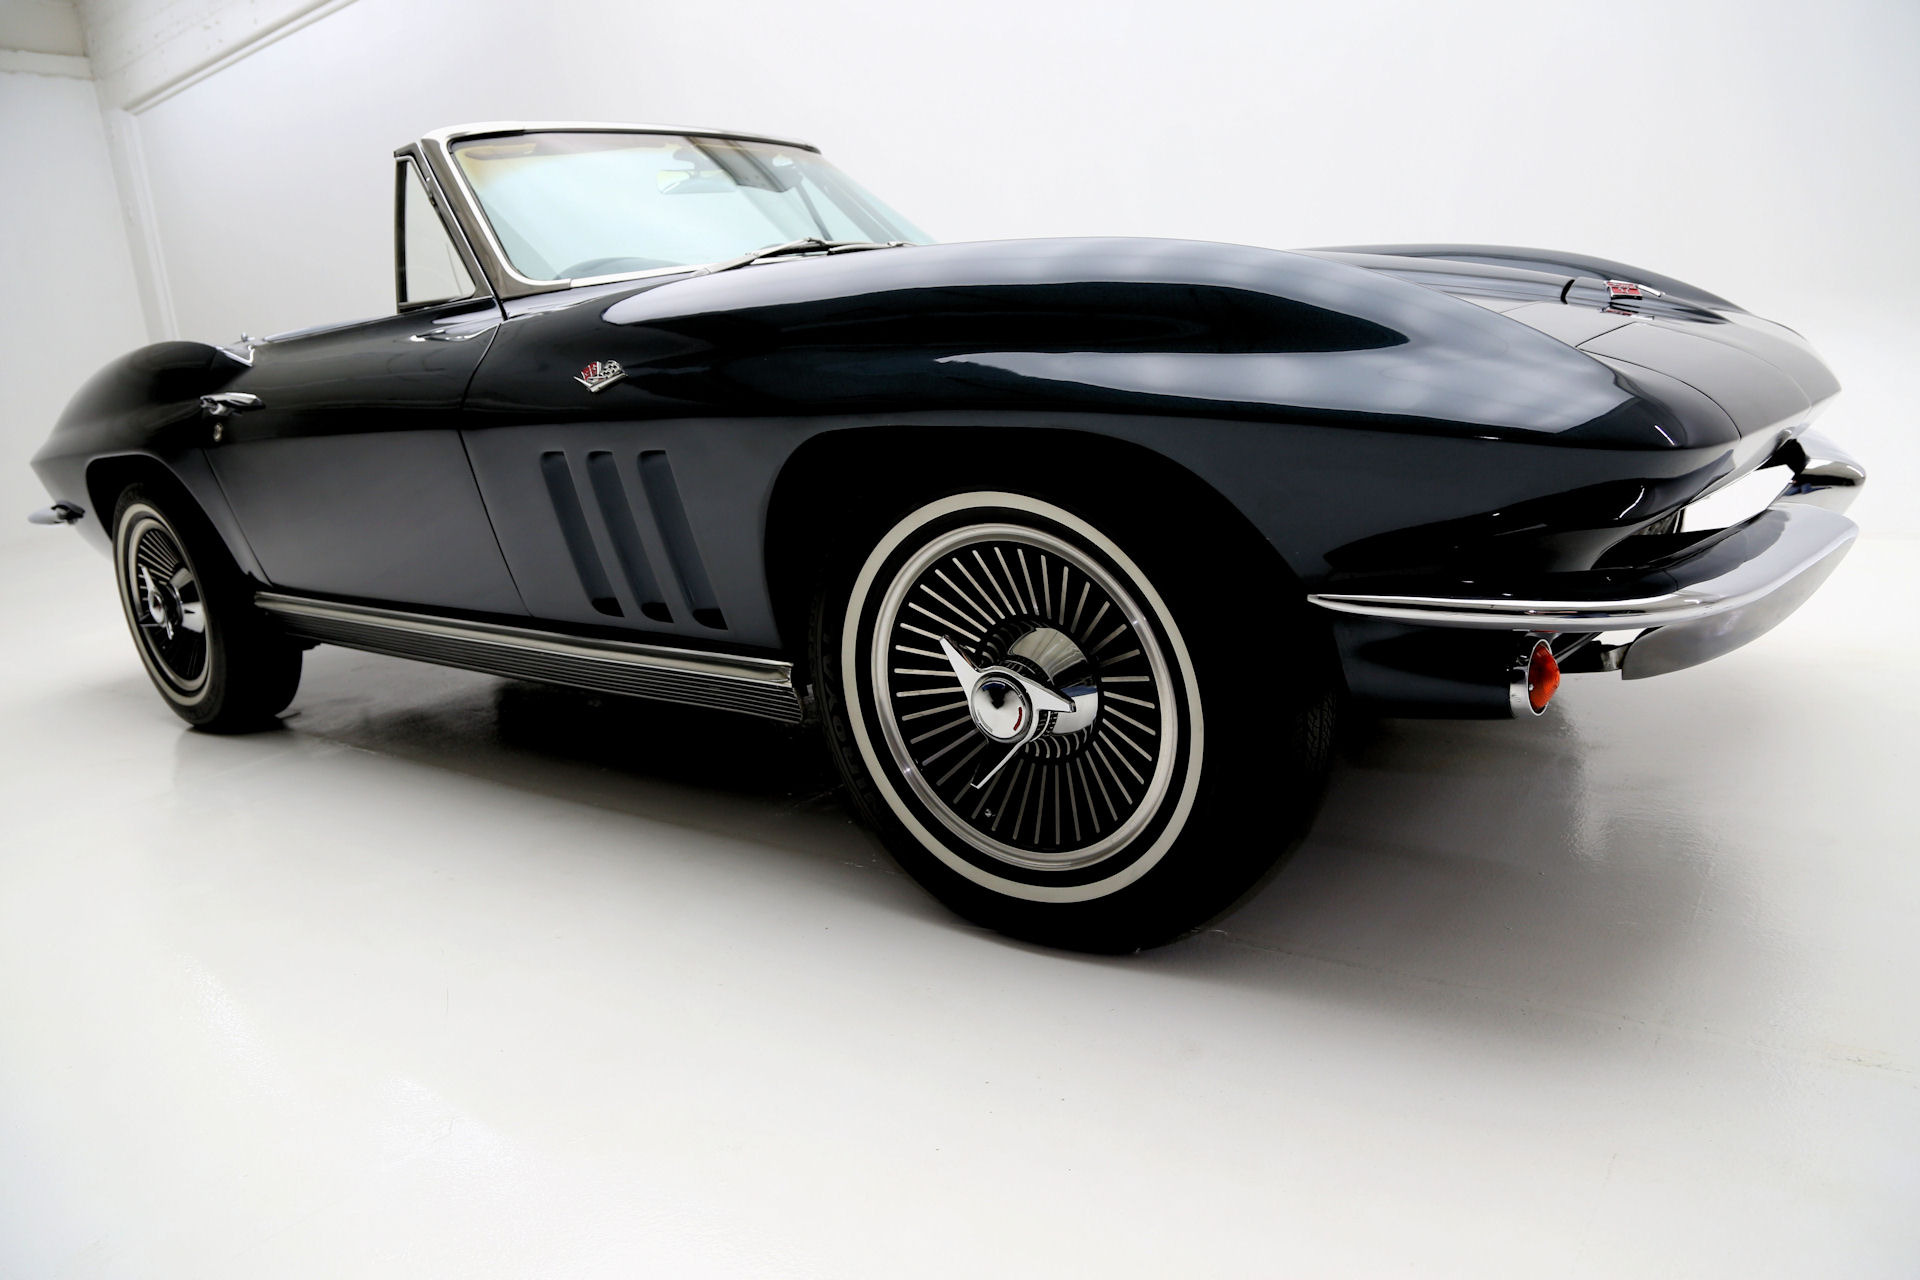 For Sale Used 1966 Chevrolet Corvette Laguna Blue, 327/350 Roadster | American Dream Machines Des Moines IA 50309